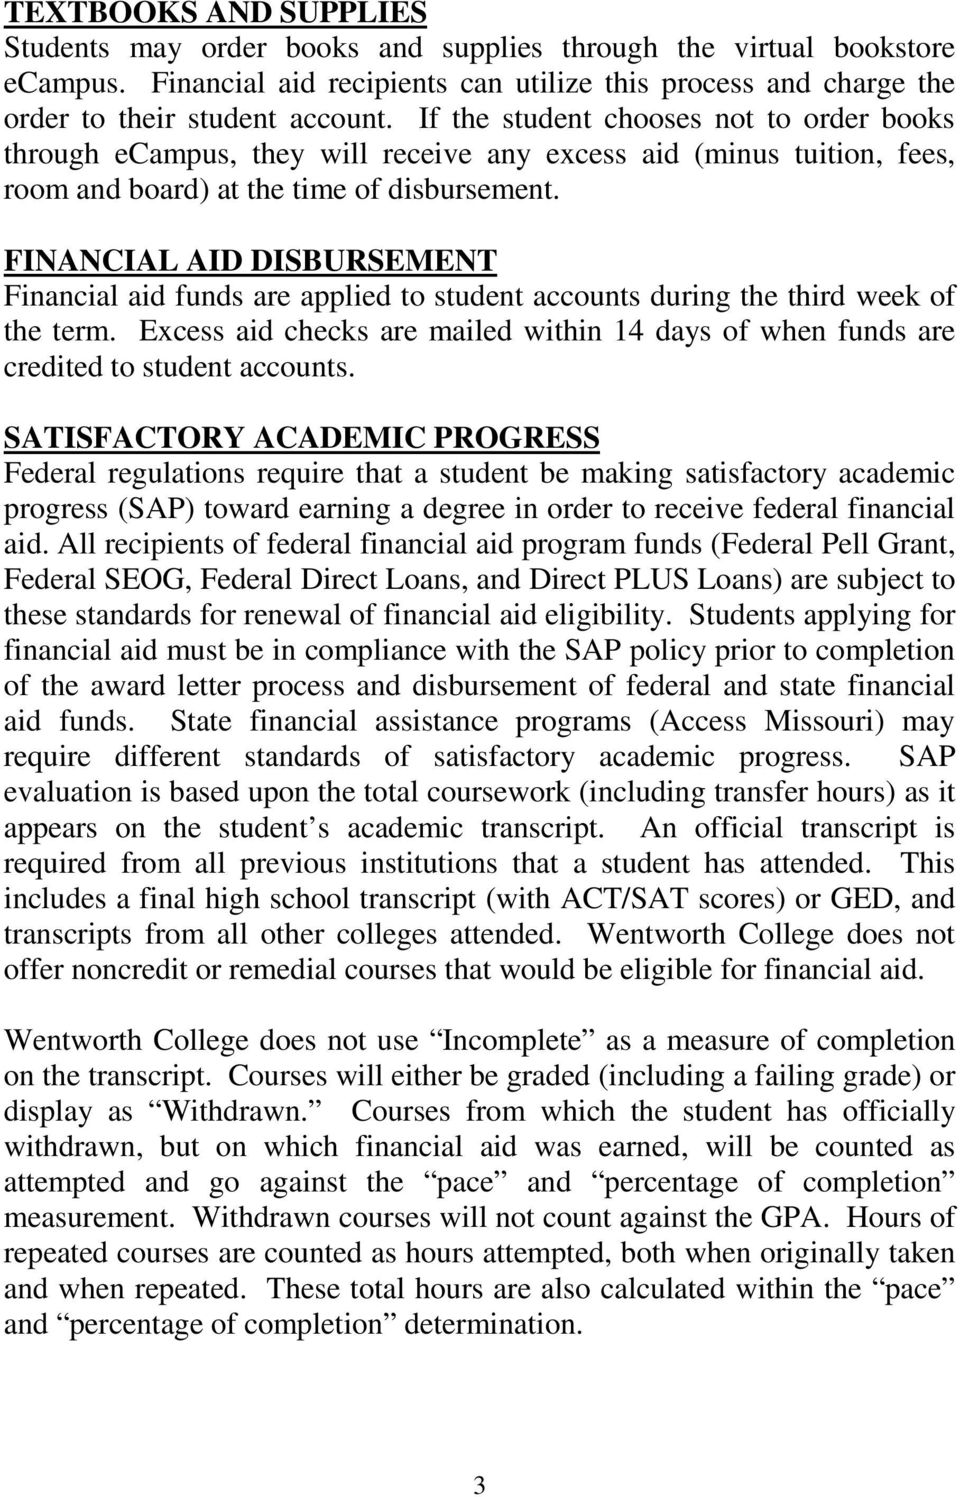 FINANCIAL AID DISBURSEMENT Financial aid funds are applied to student accounts during the third week of the term.